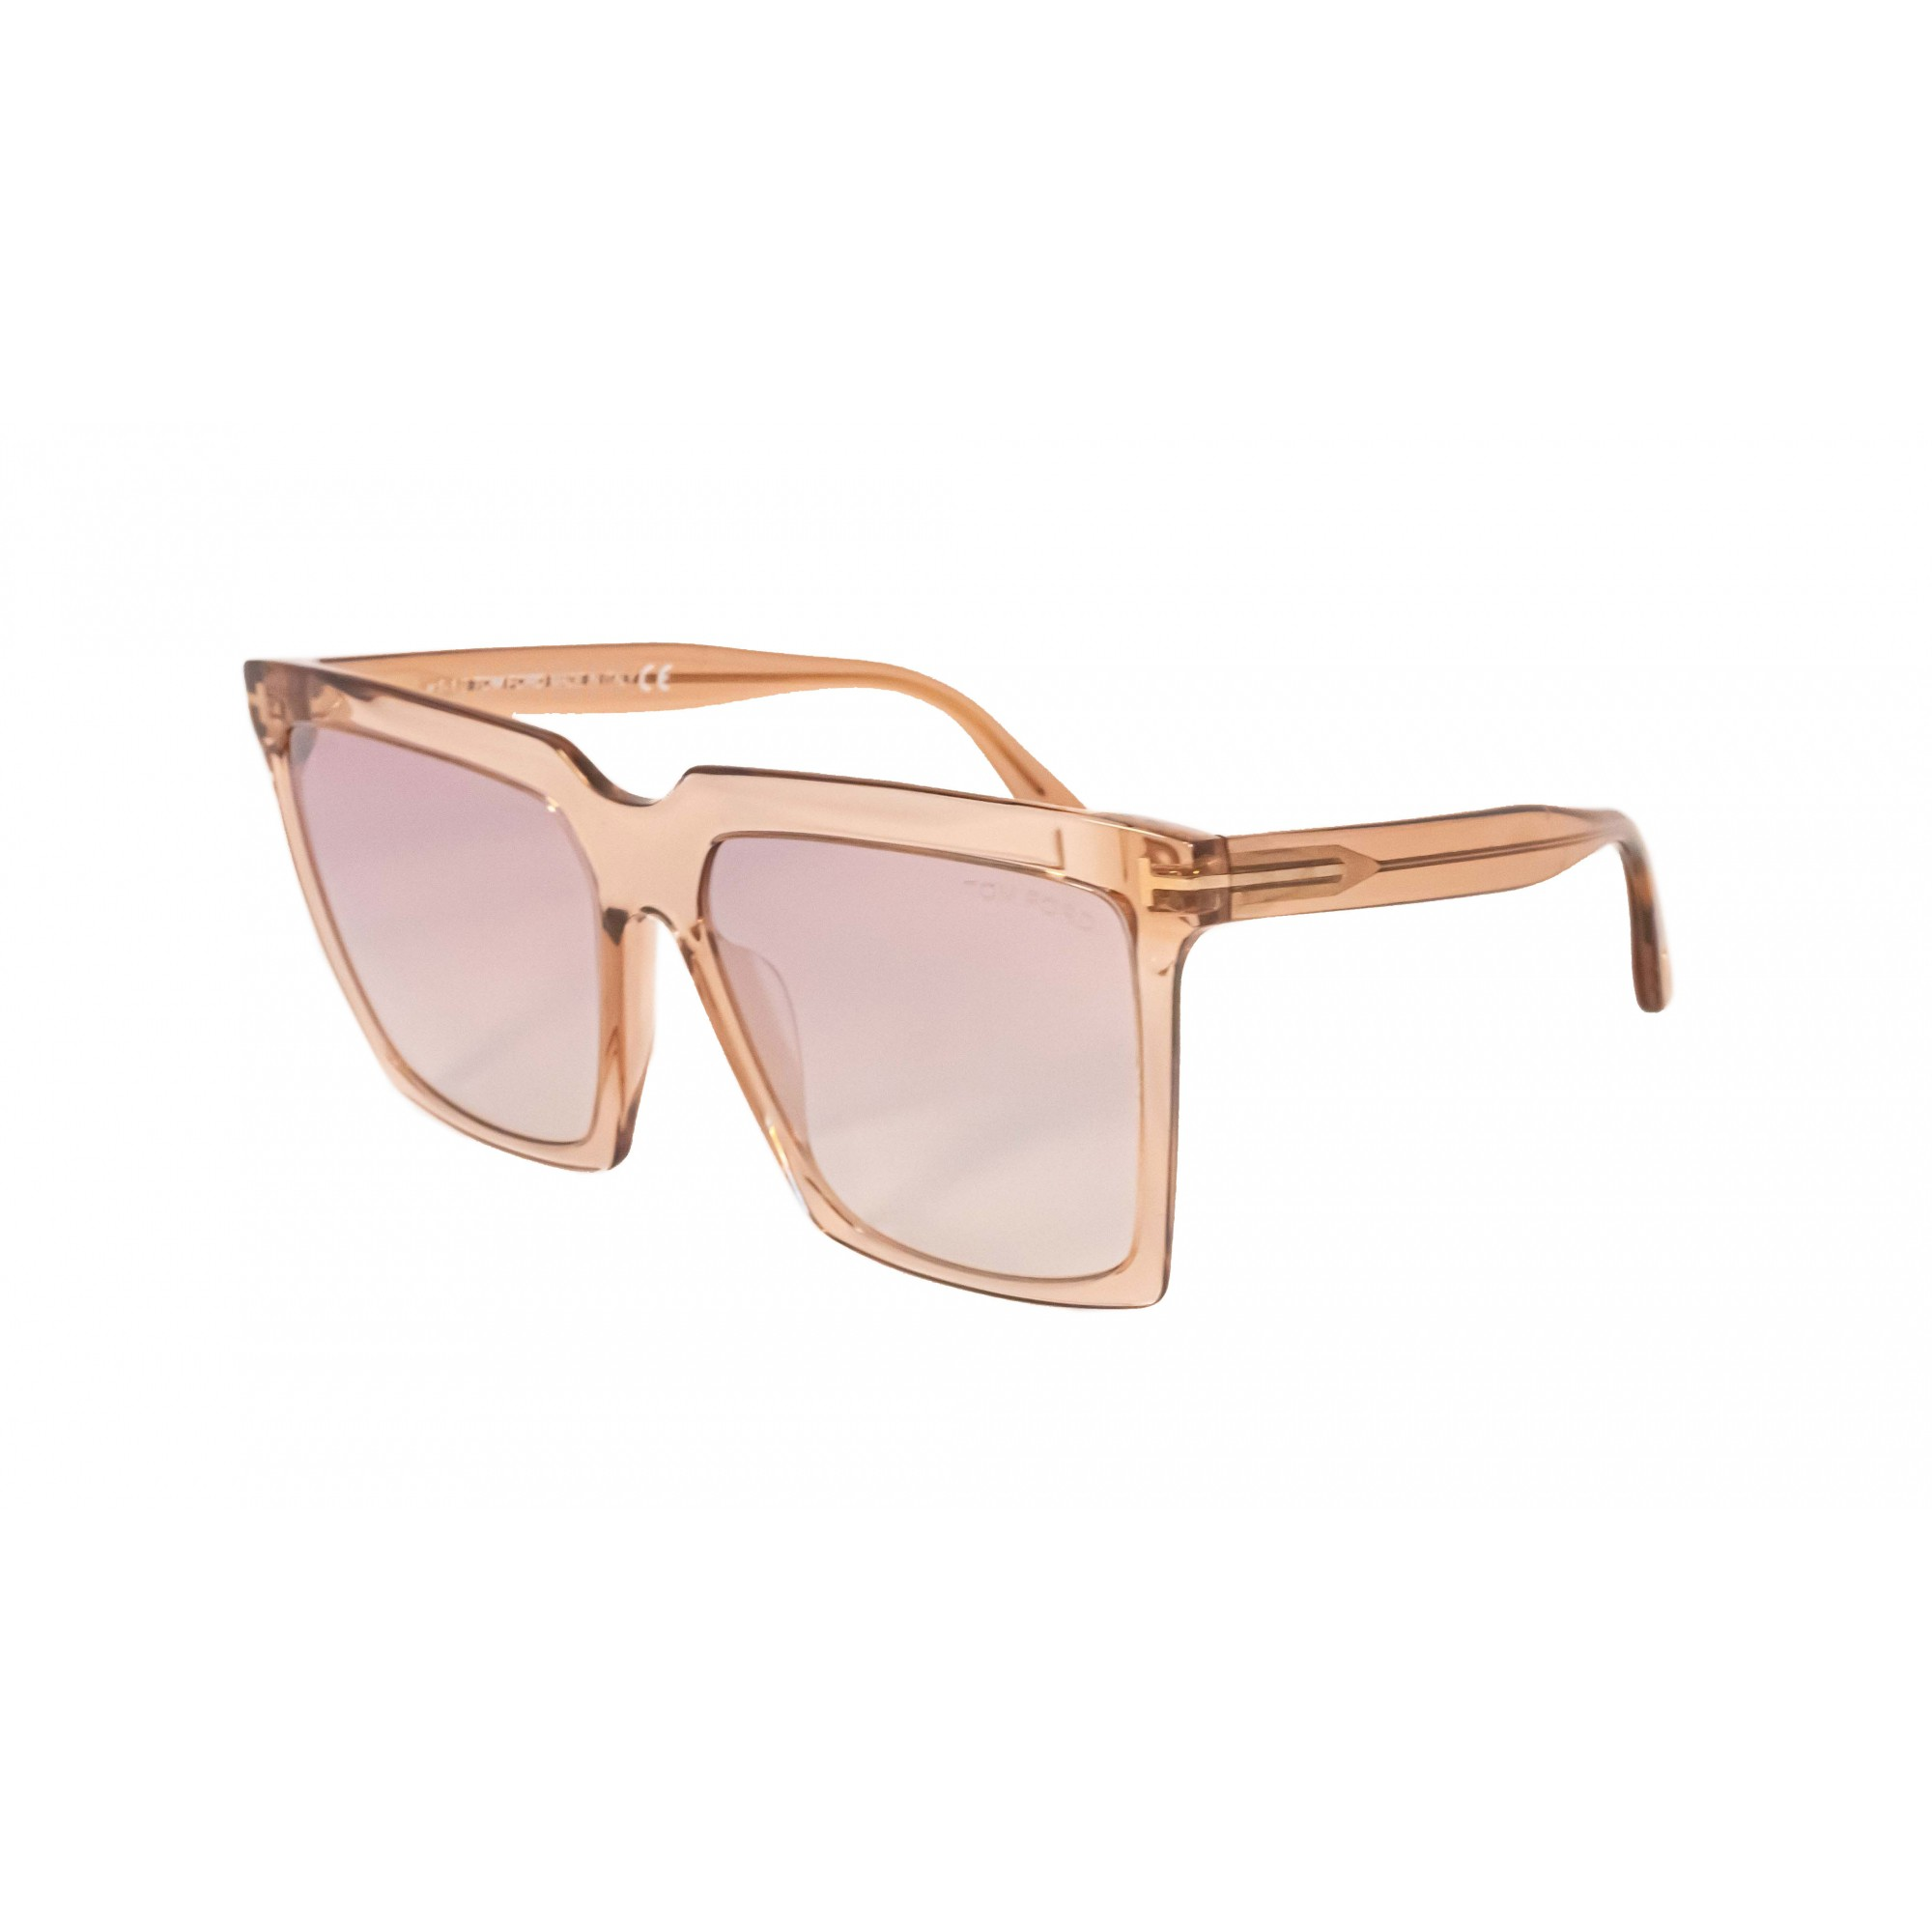 Óculos Tom Ford Quadrado Tf0764 57g 58 Transparente